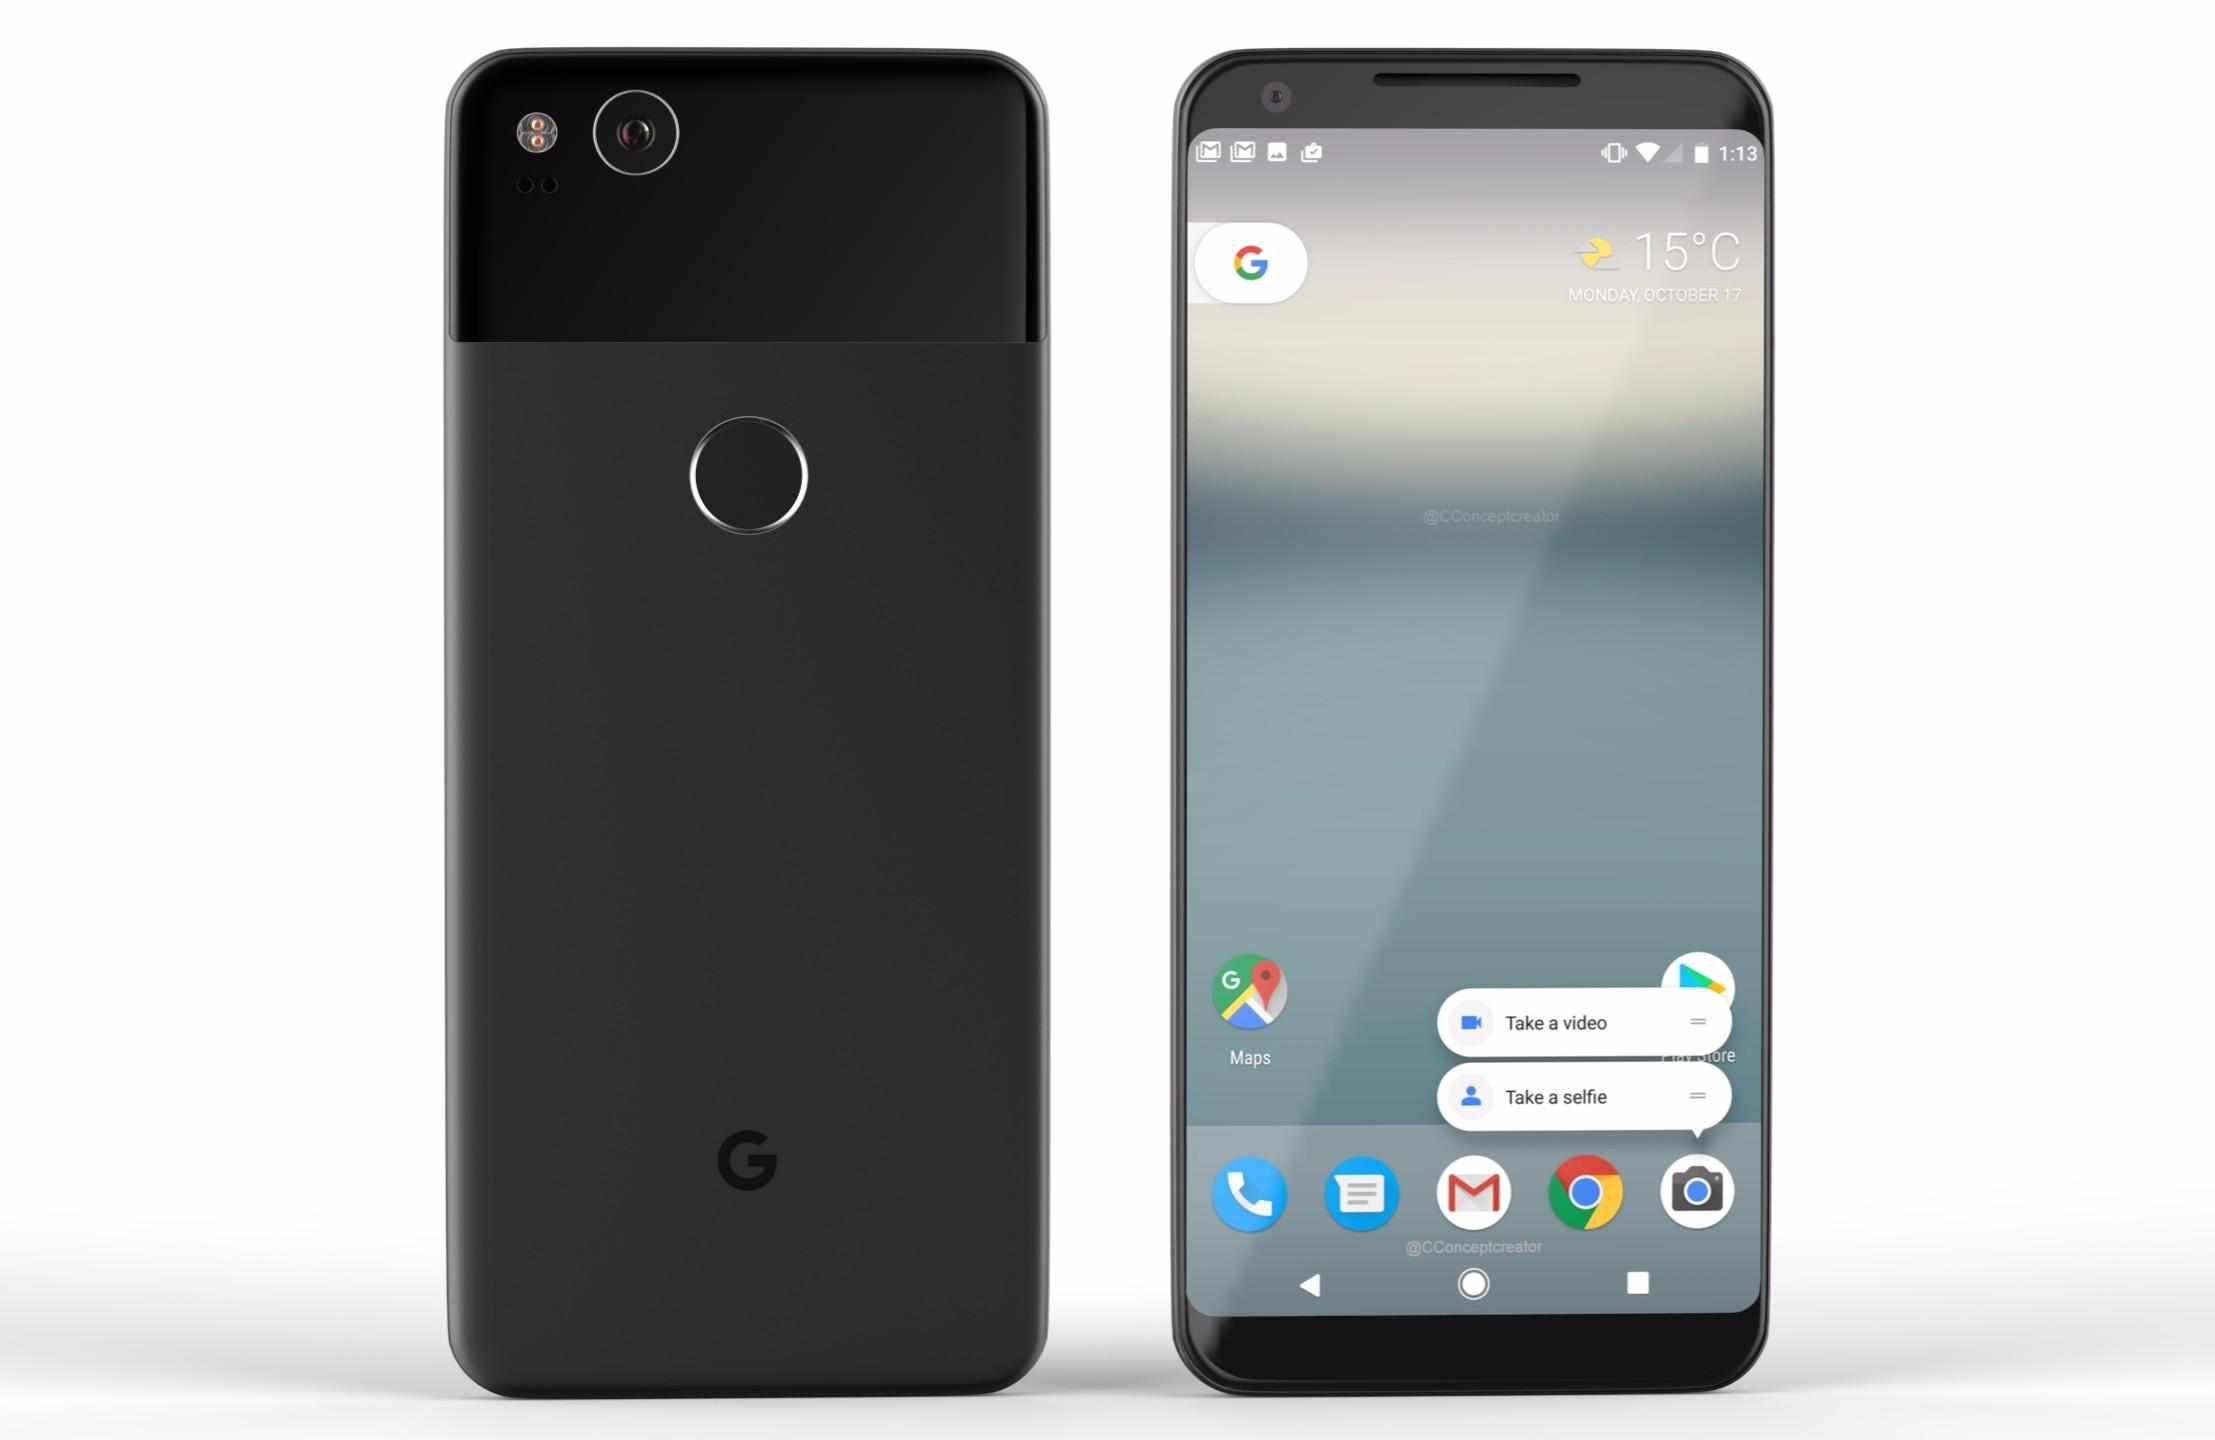 How to make Android Device look like Google Pixel 2 (Google Pixel 2 Launcher)